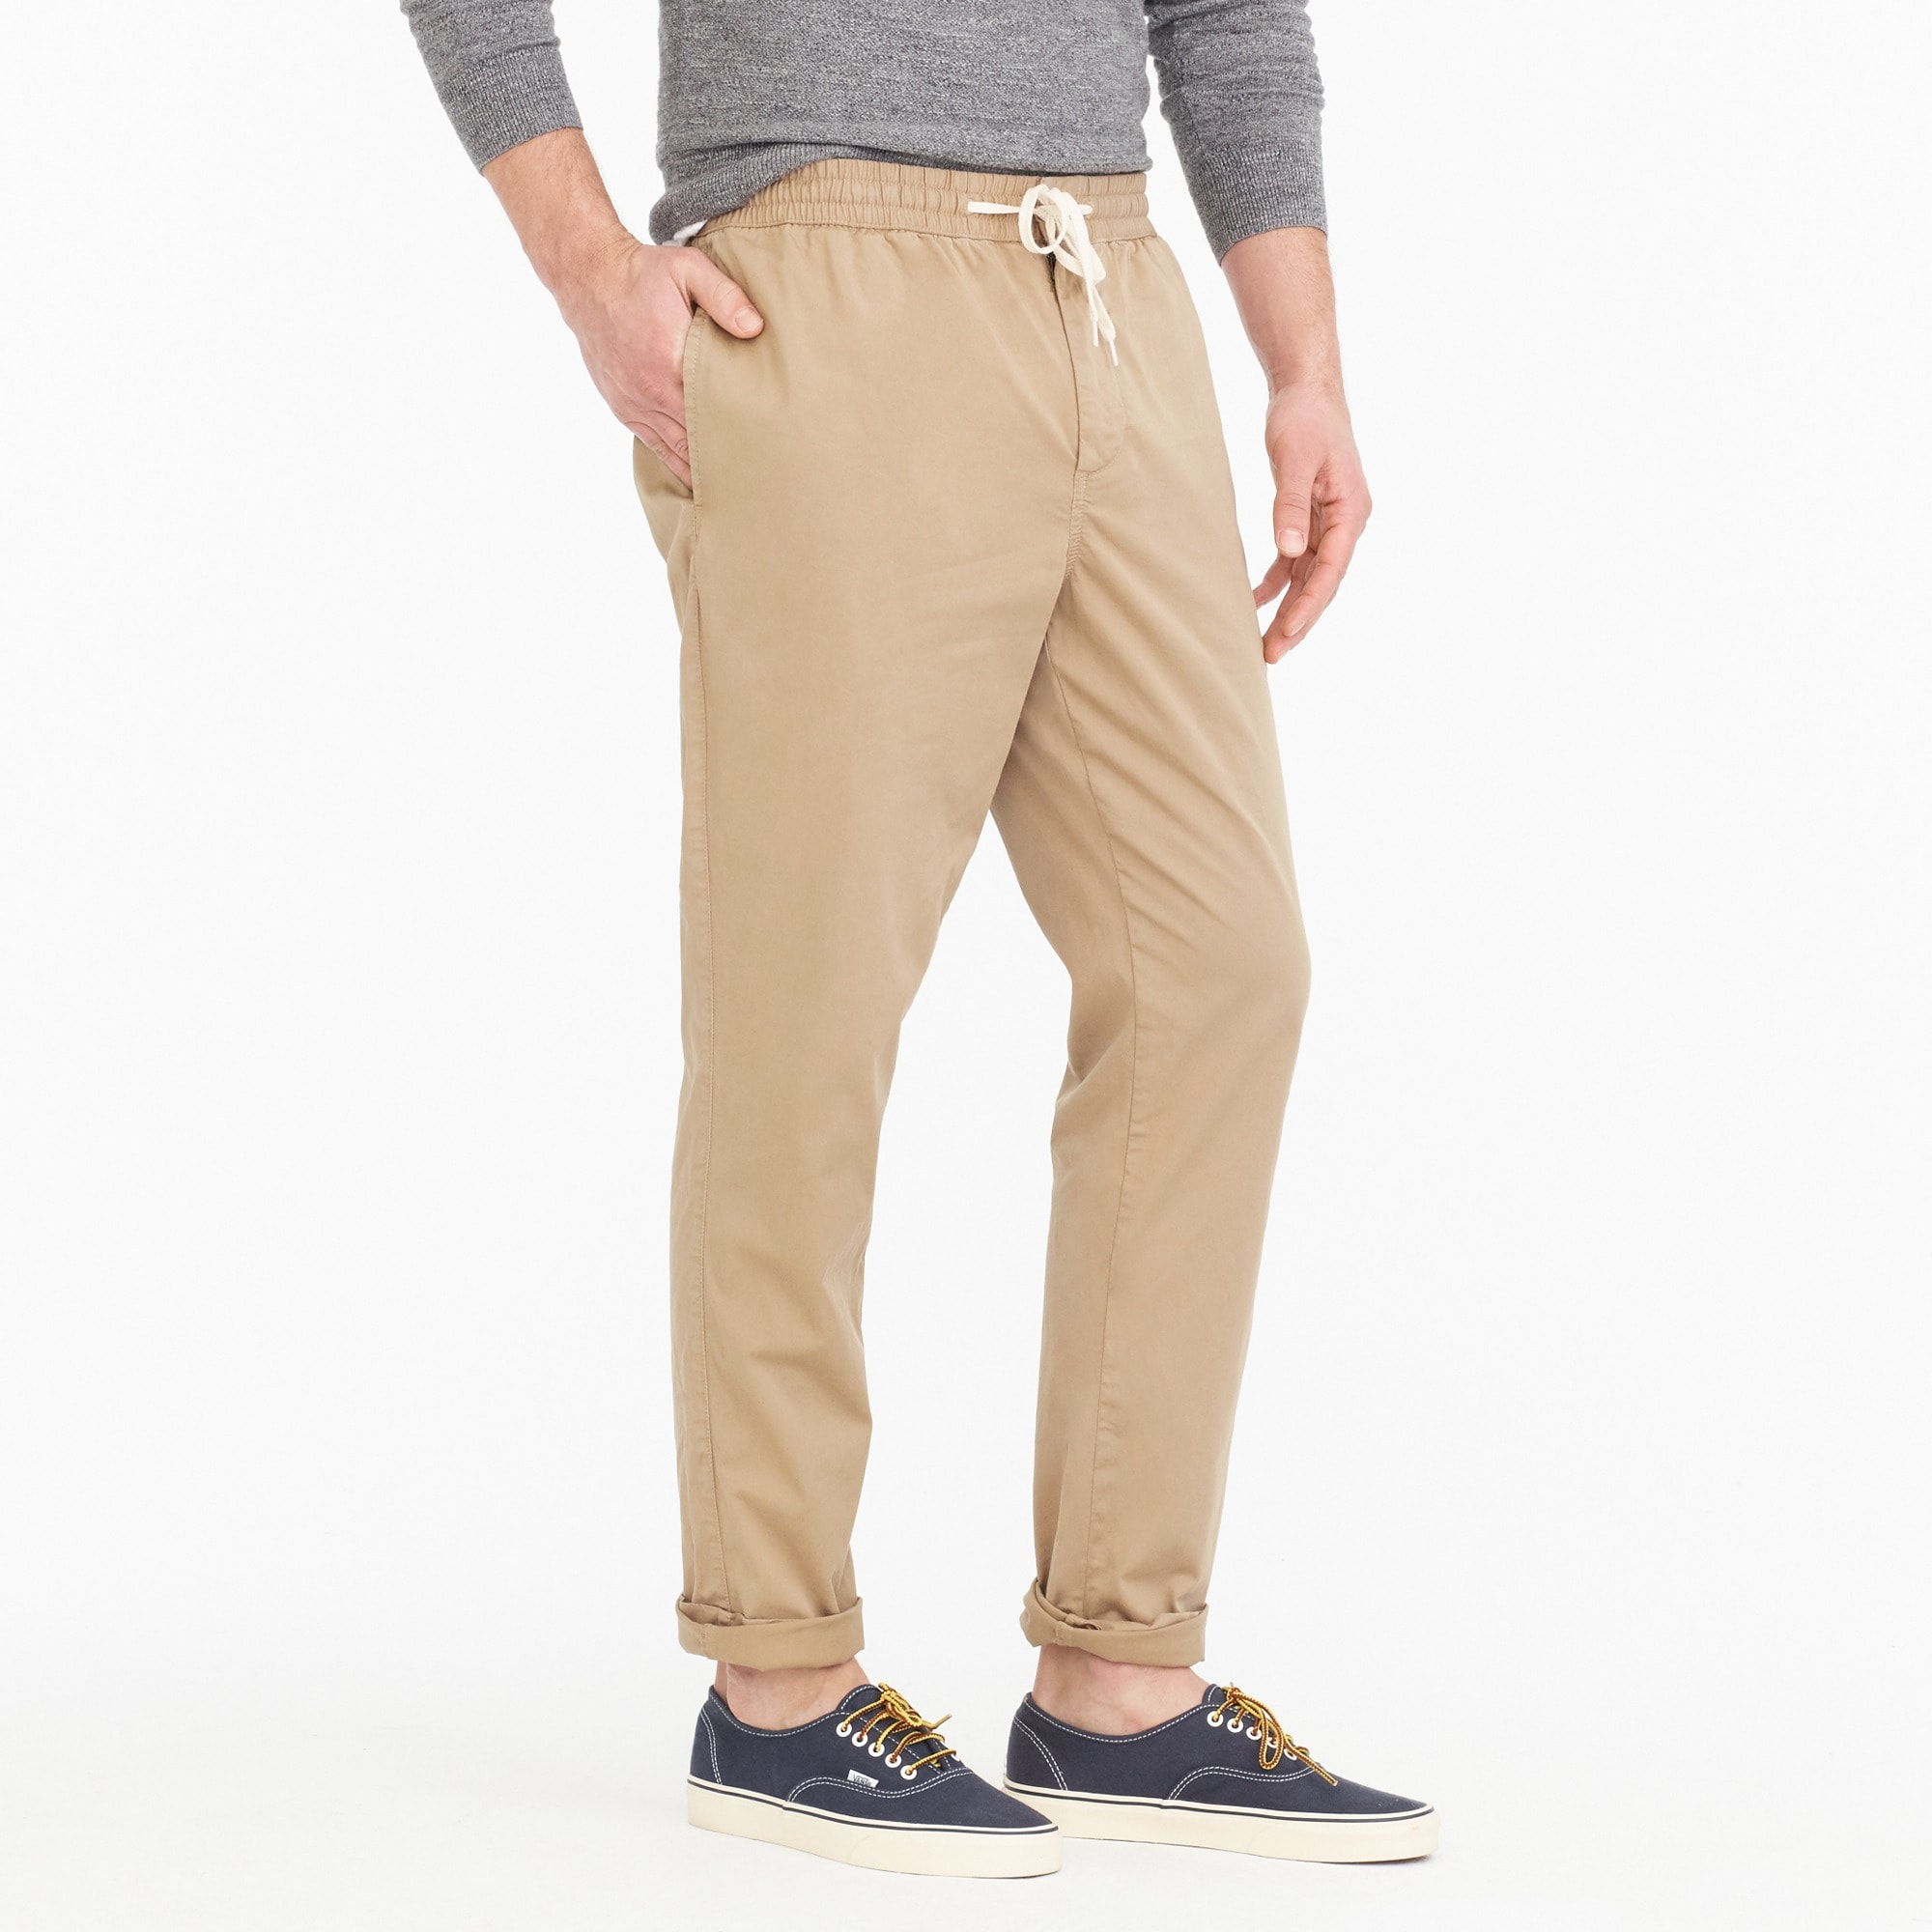 Image 2 for Drawstring pant in chino